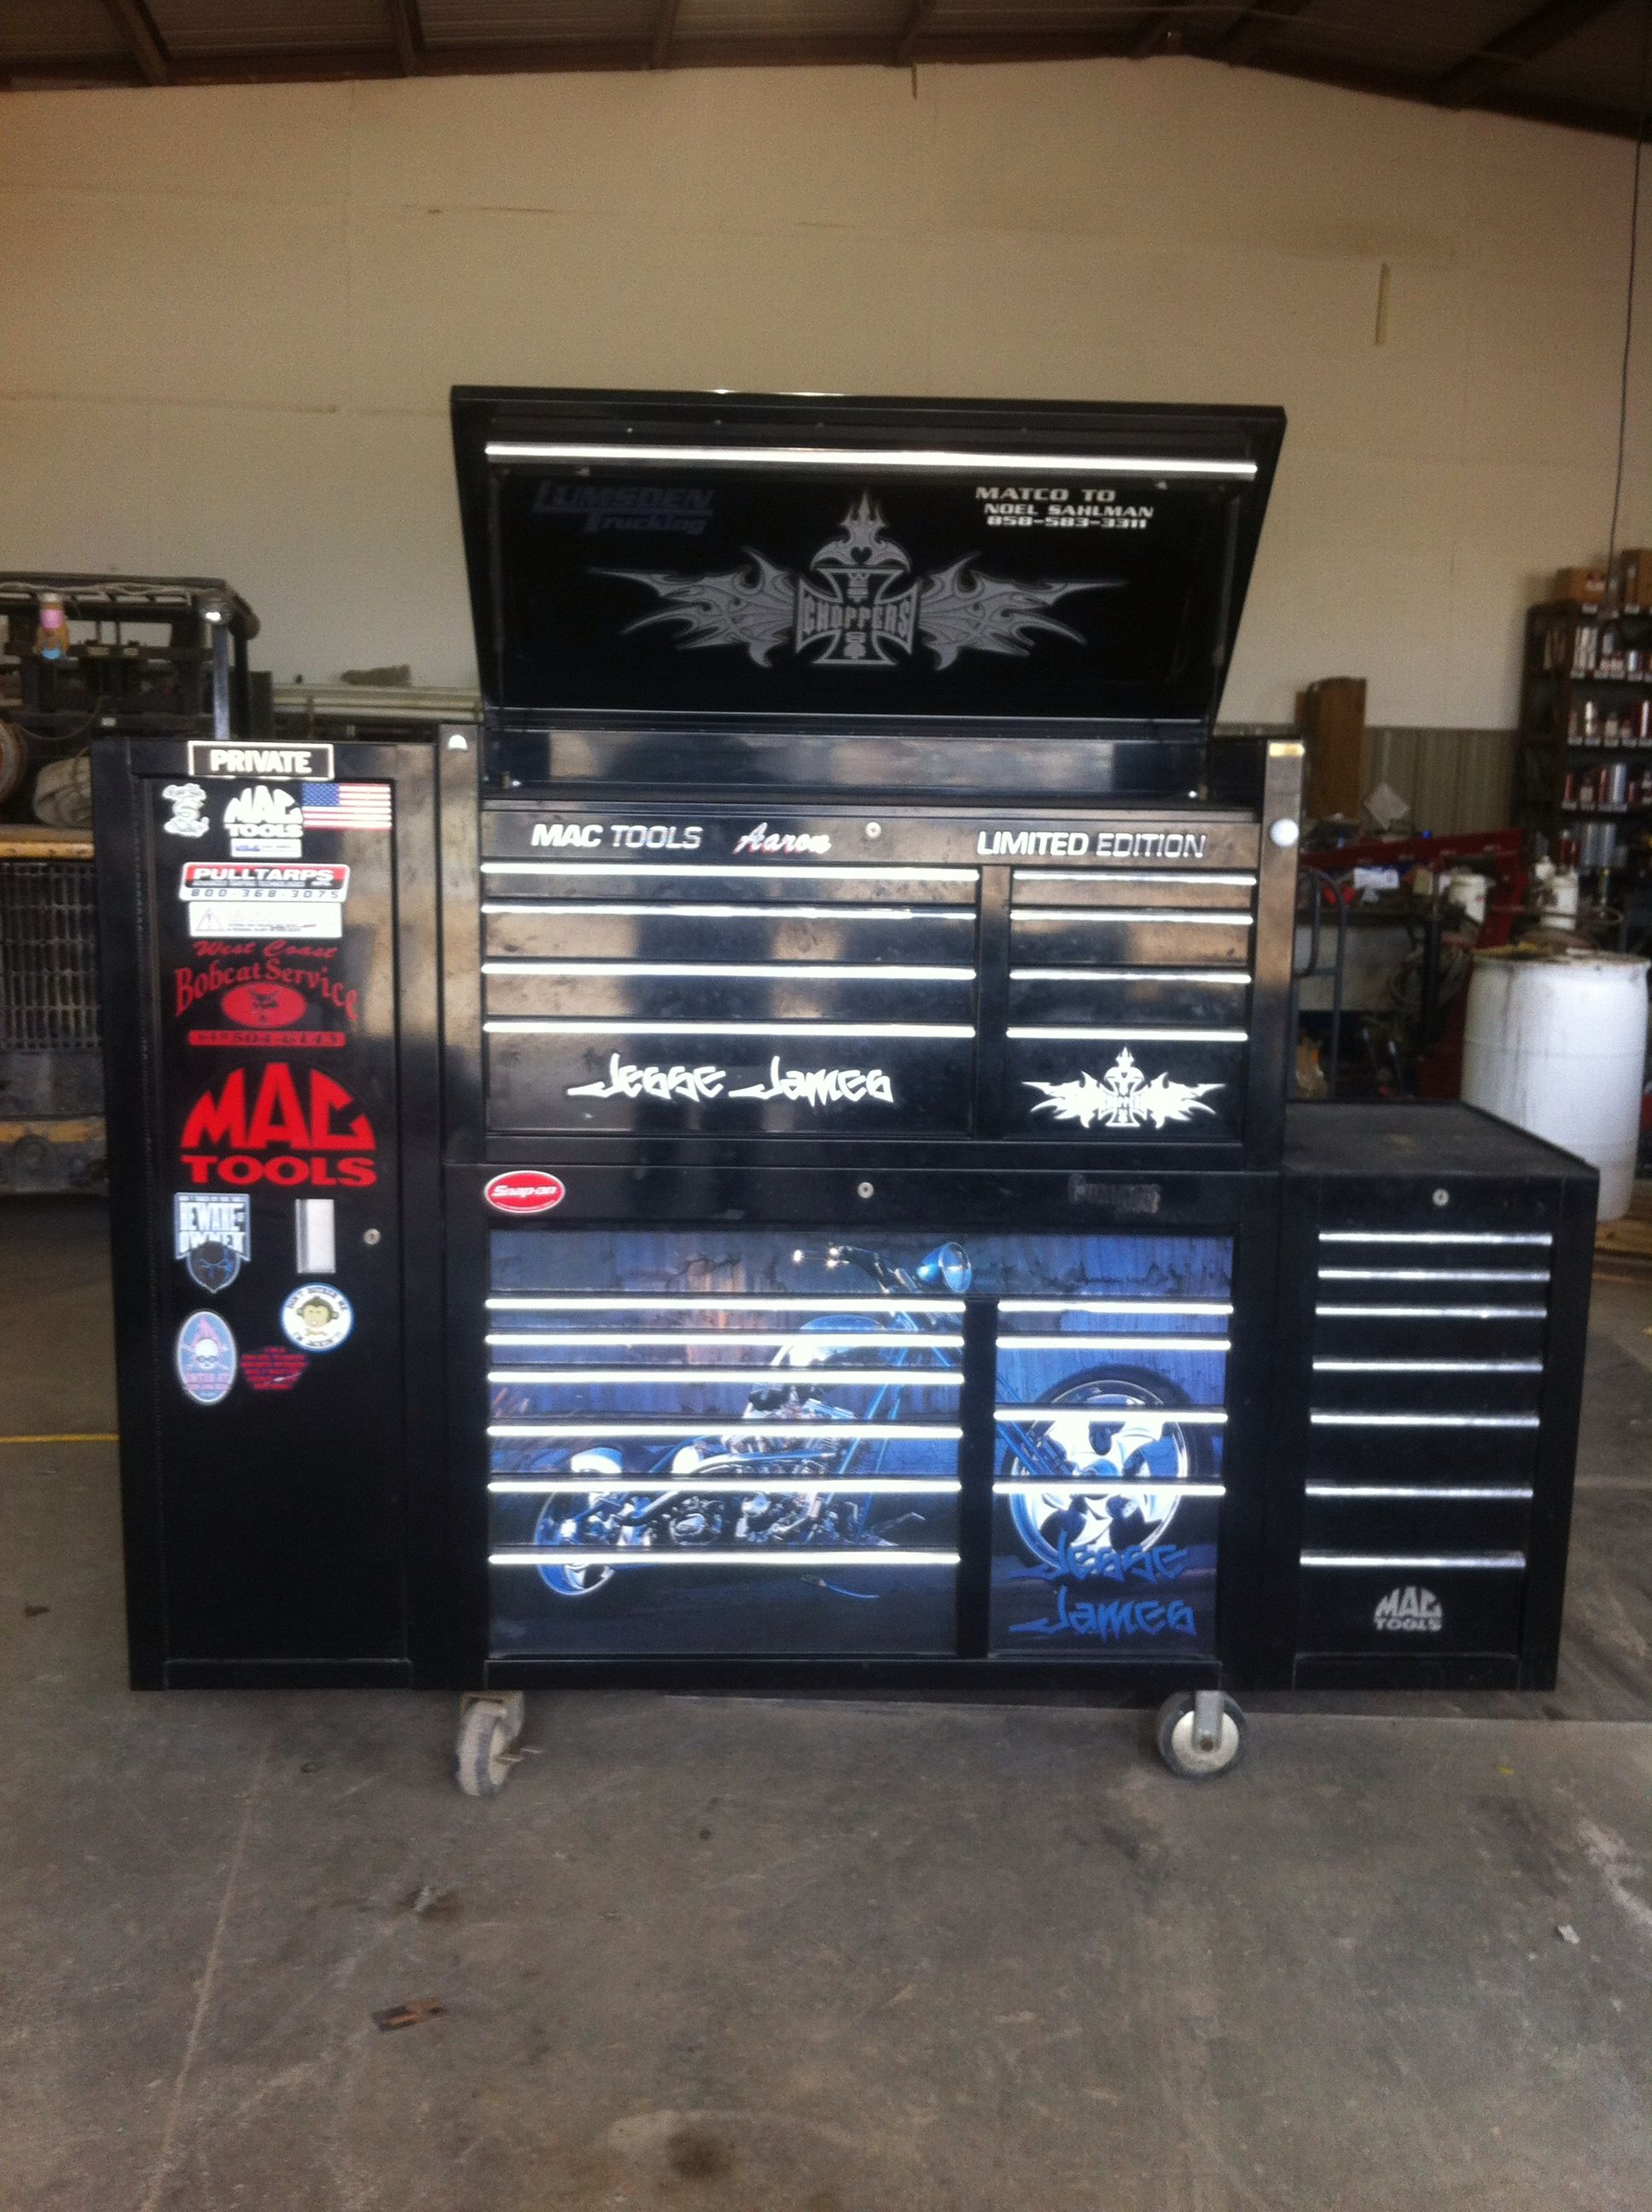 Shop Tool Boxes Jesse James Mac Tool Box Garage Shop Tool Storage Mechanic